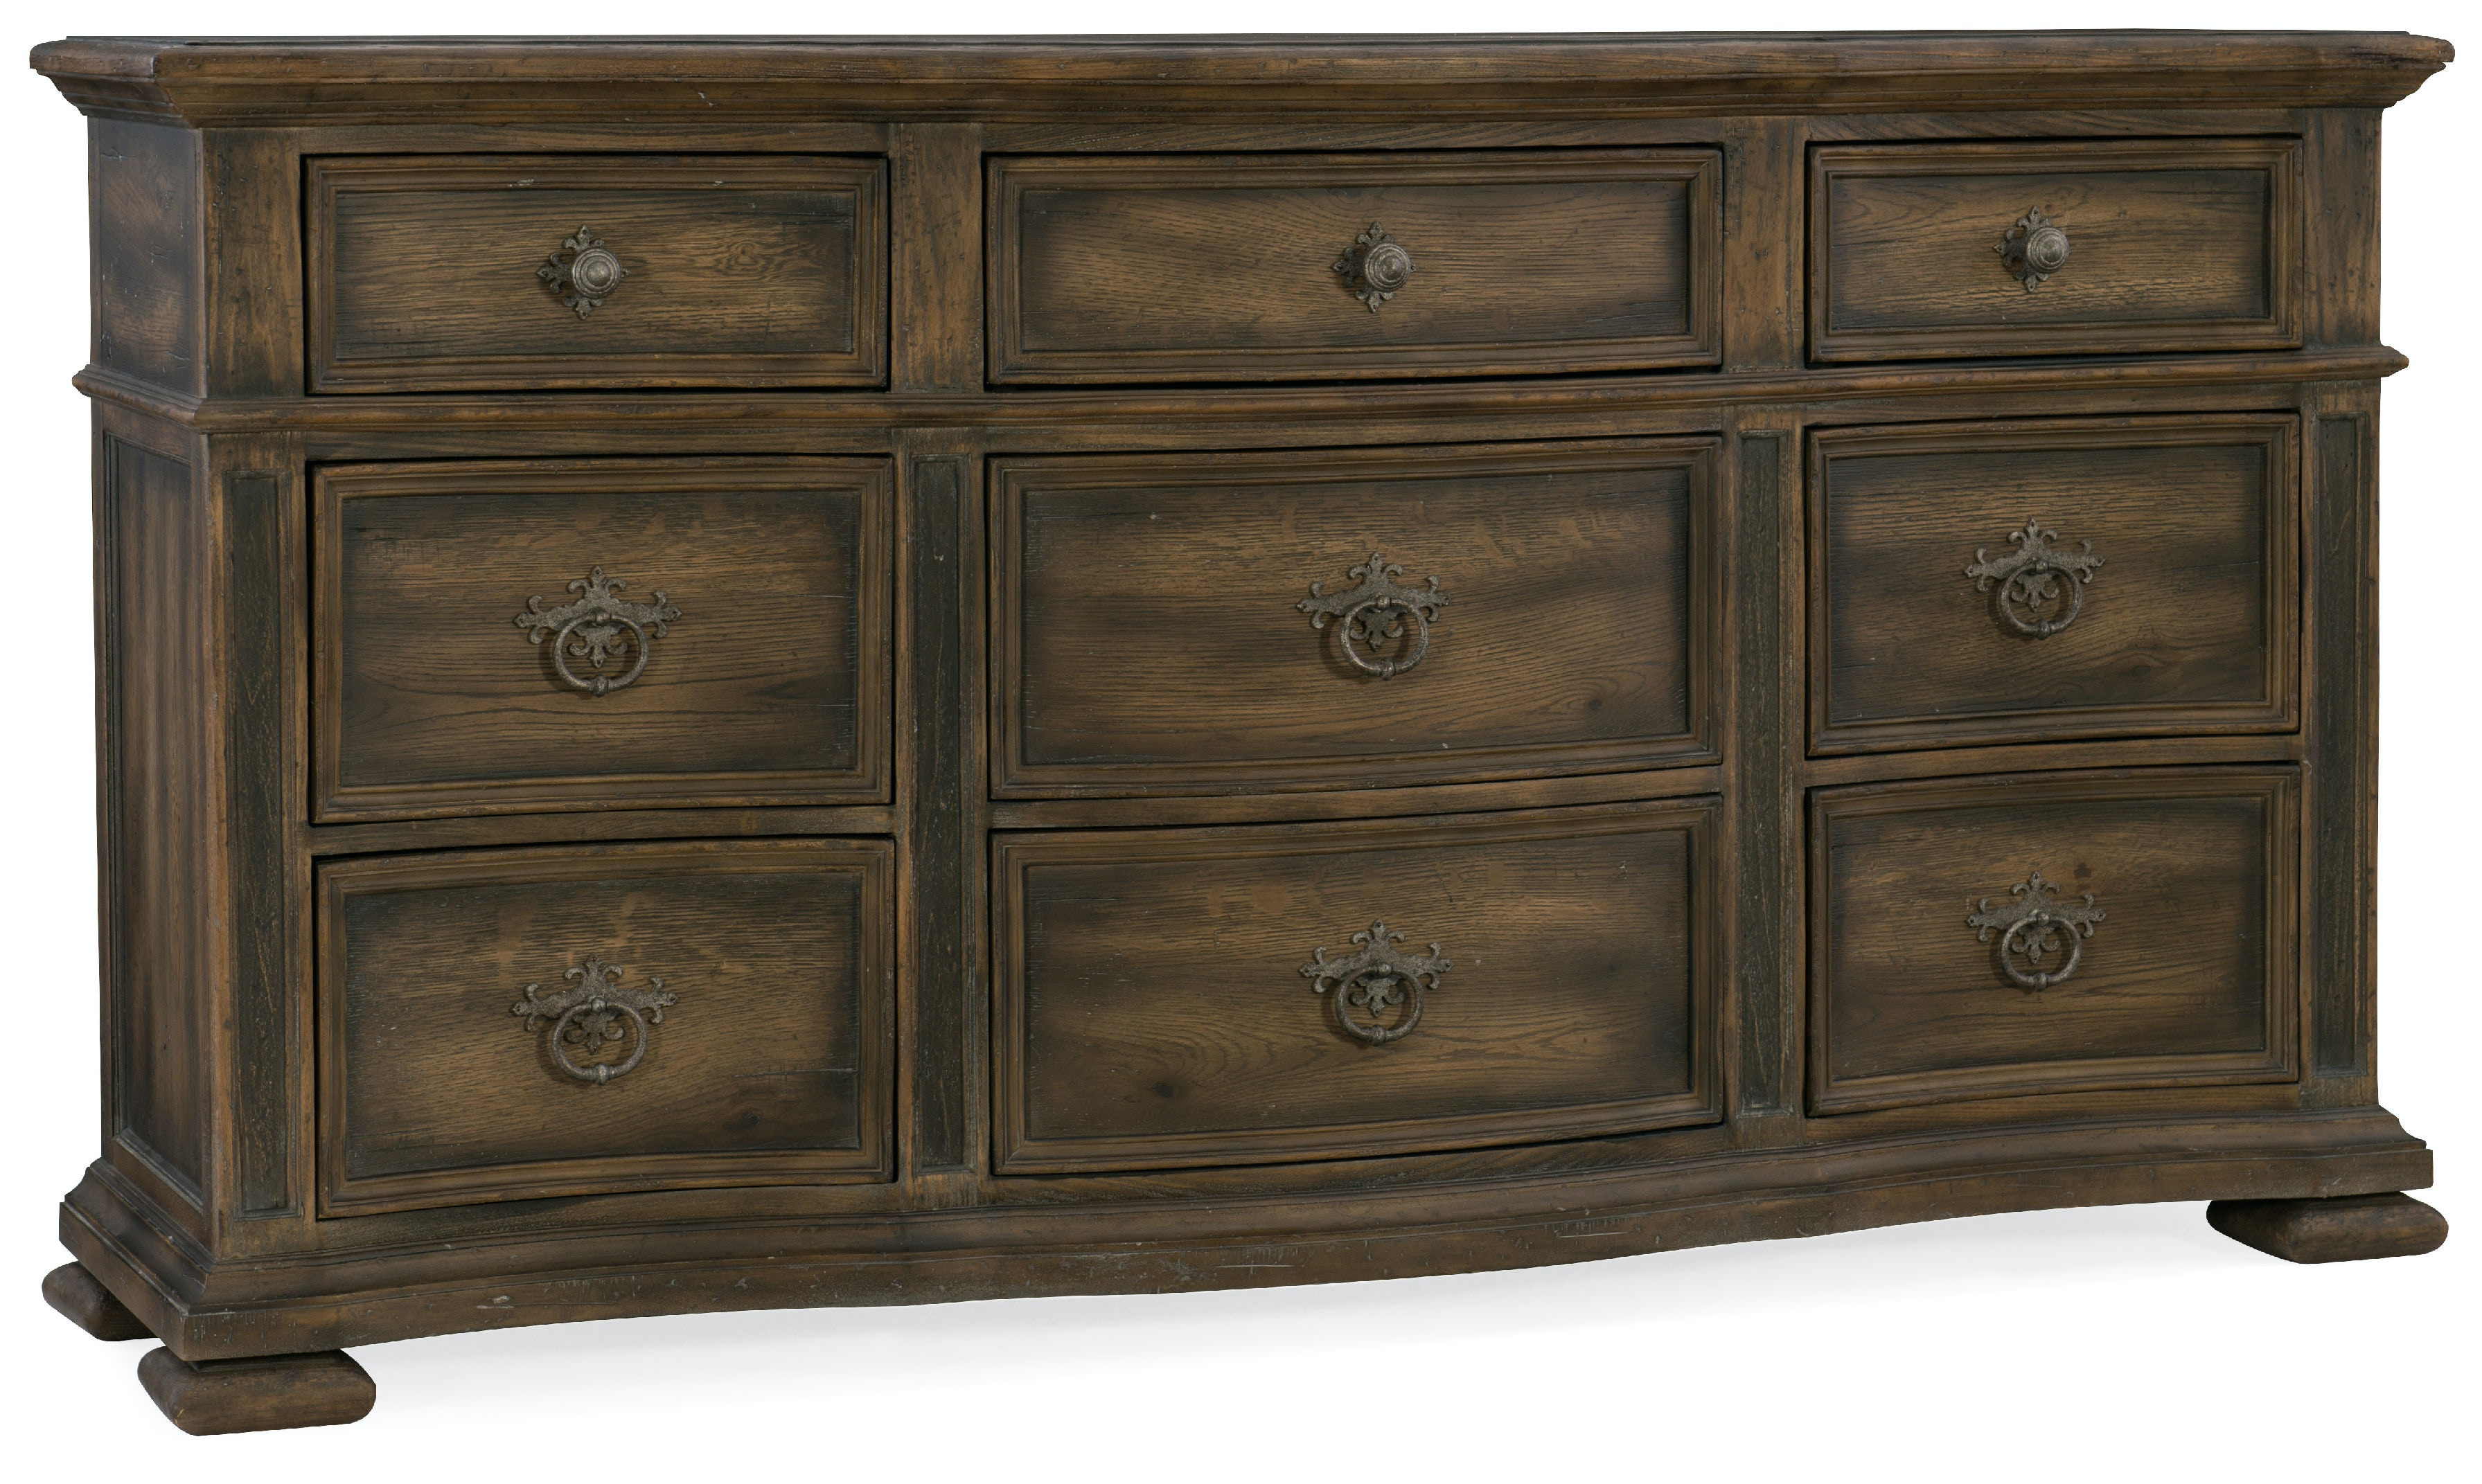 Top Hooker Furniture Bedroom Williamson Nine-Drawer Dresser 5960-90002  QZ43